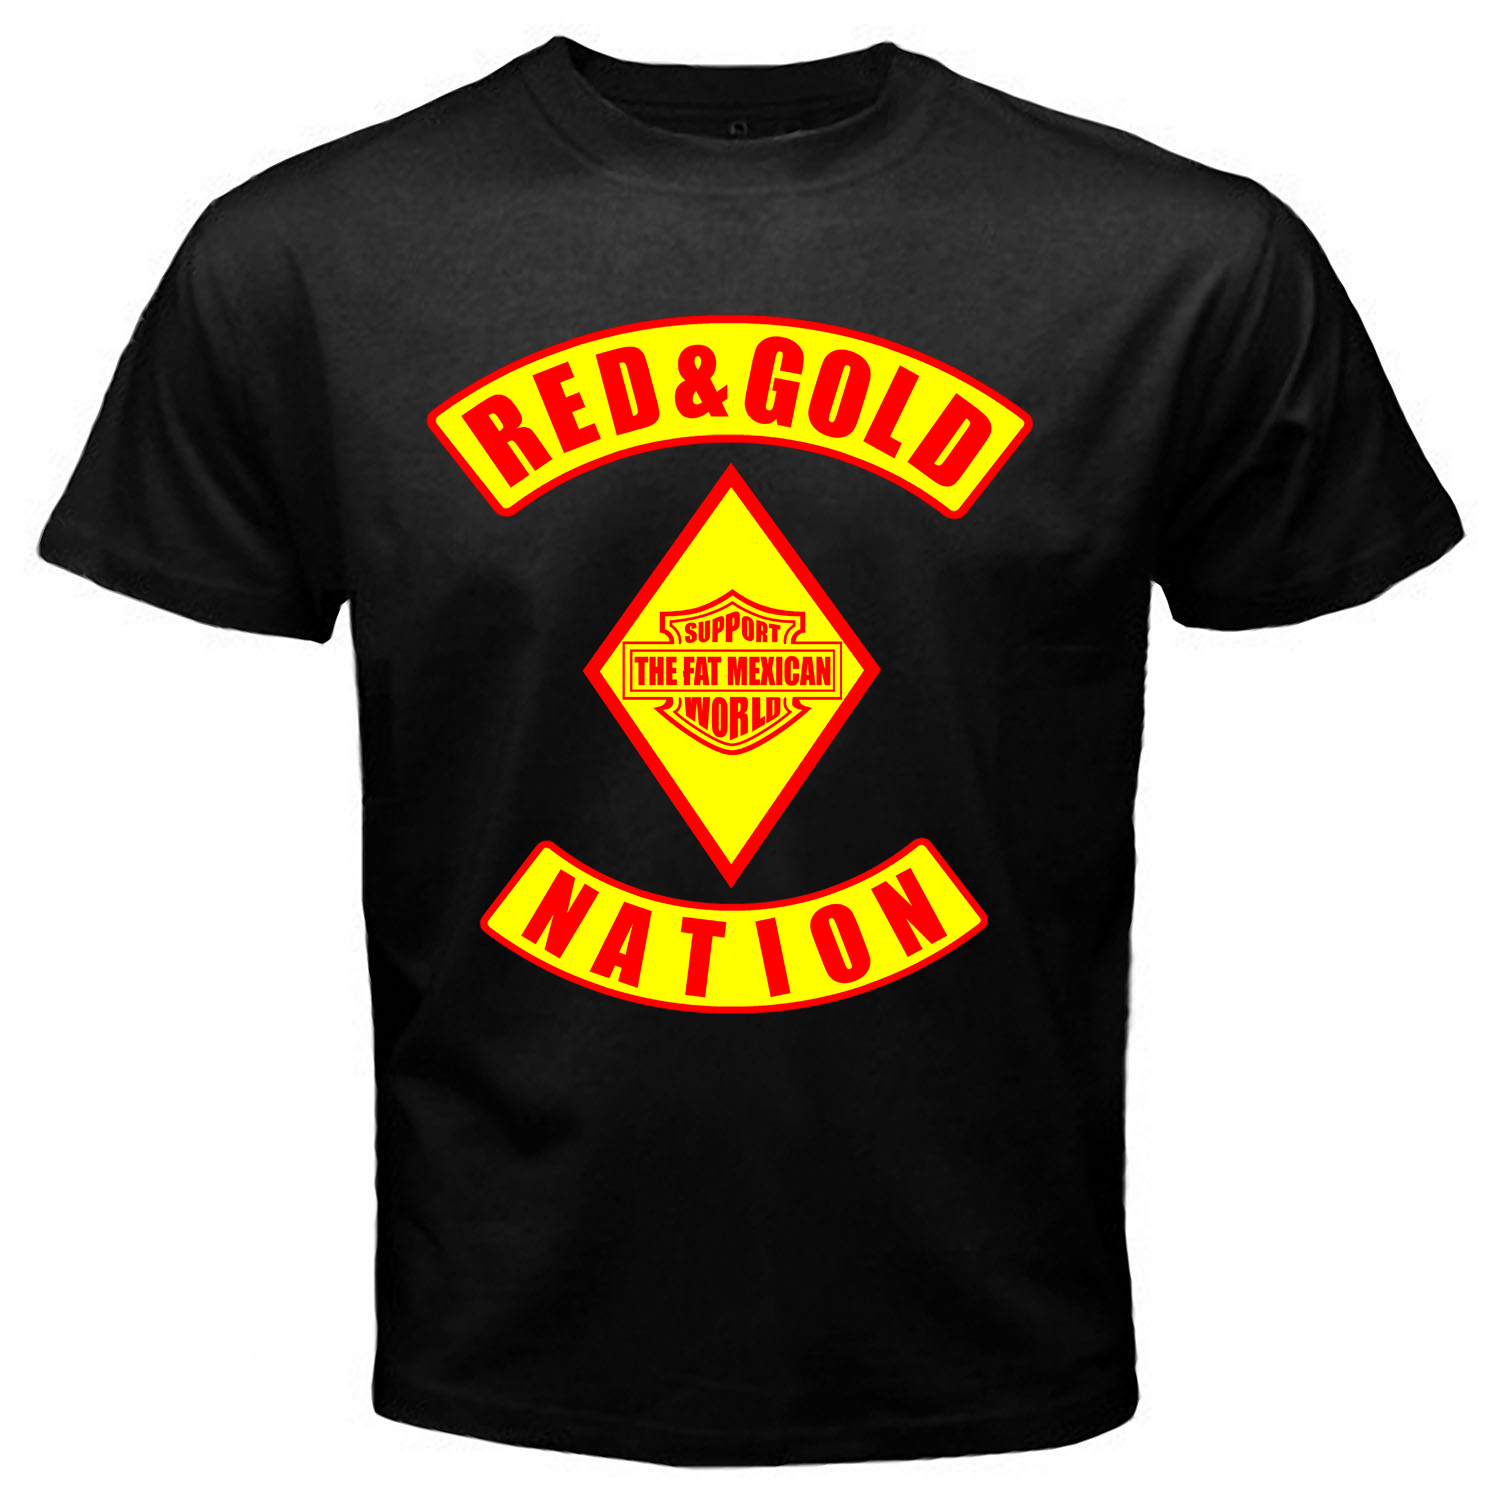 Red and Gold Nation Black T-shirt One Side